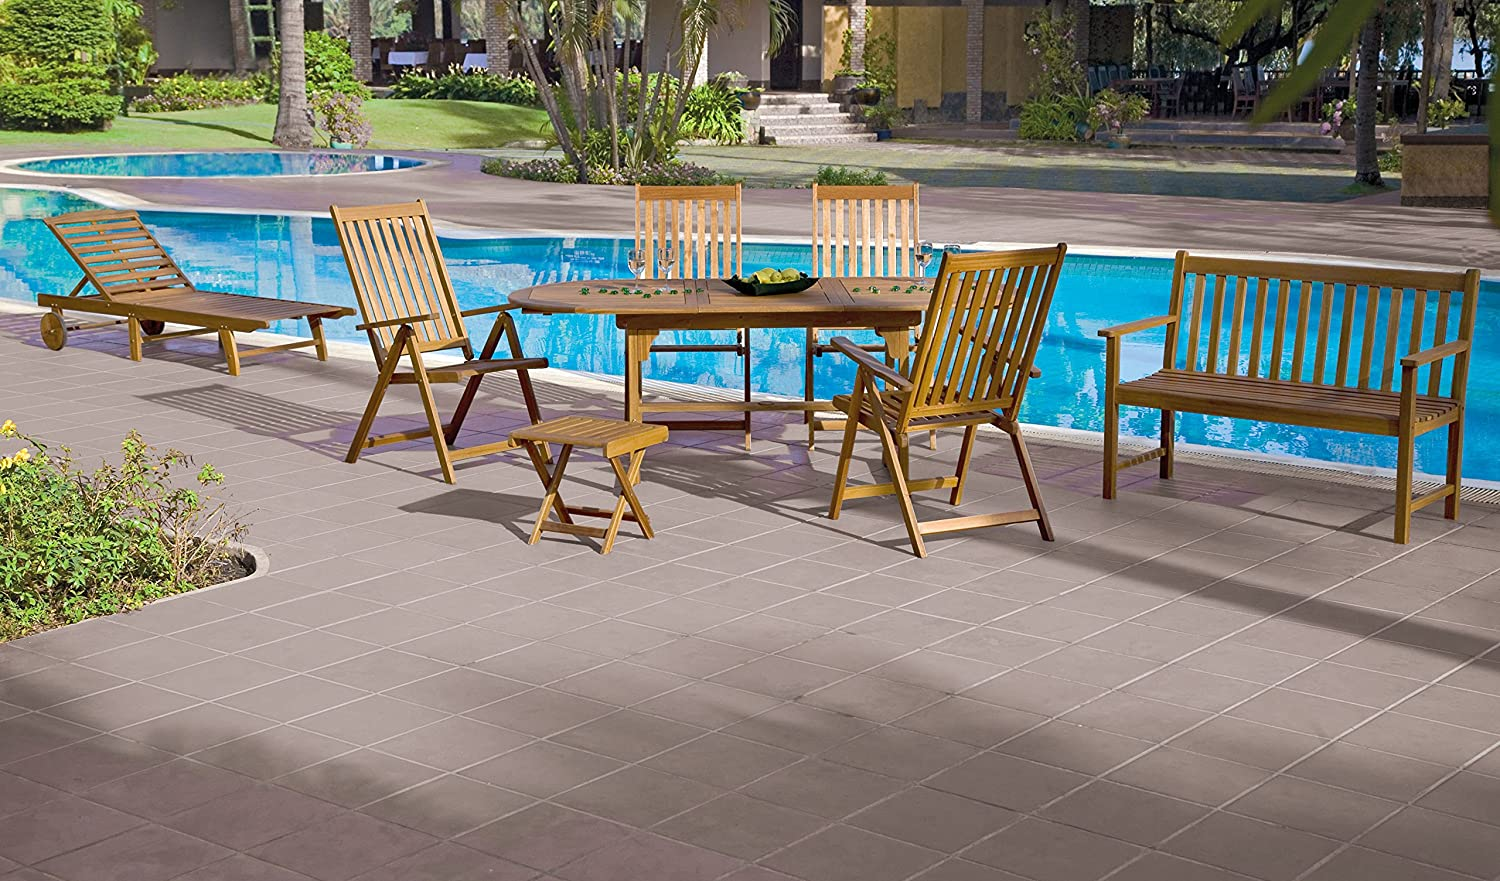 Landmann 61910 Summer Arm, Bench, Lounge Chair and Table Patio Set